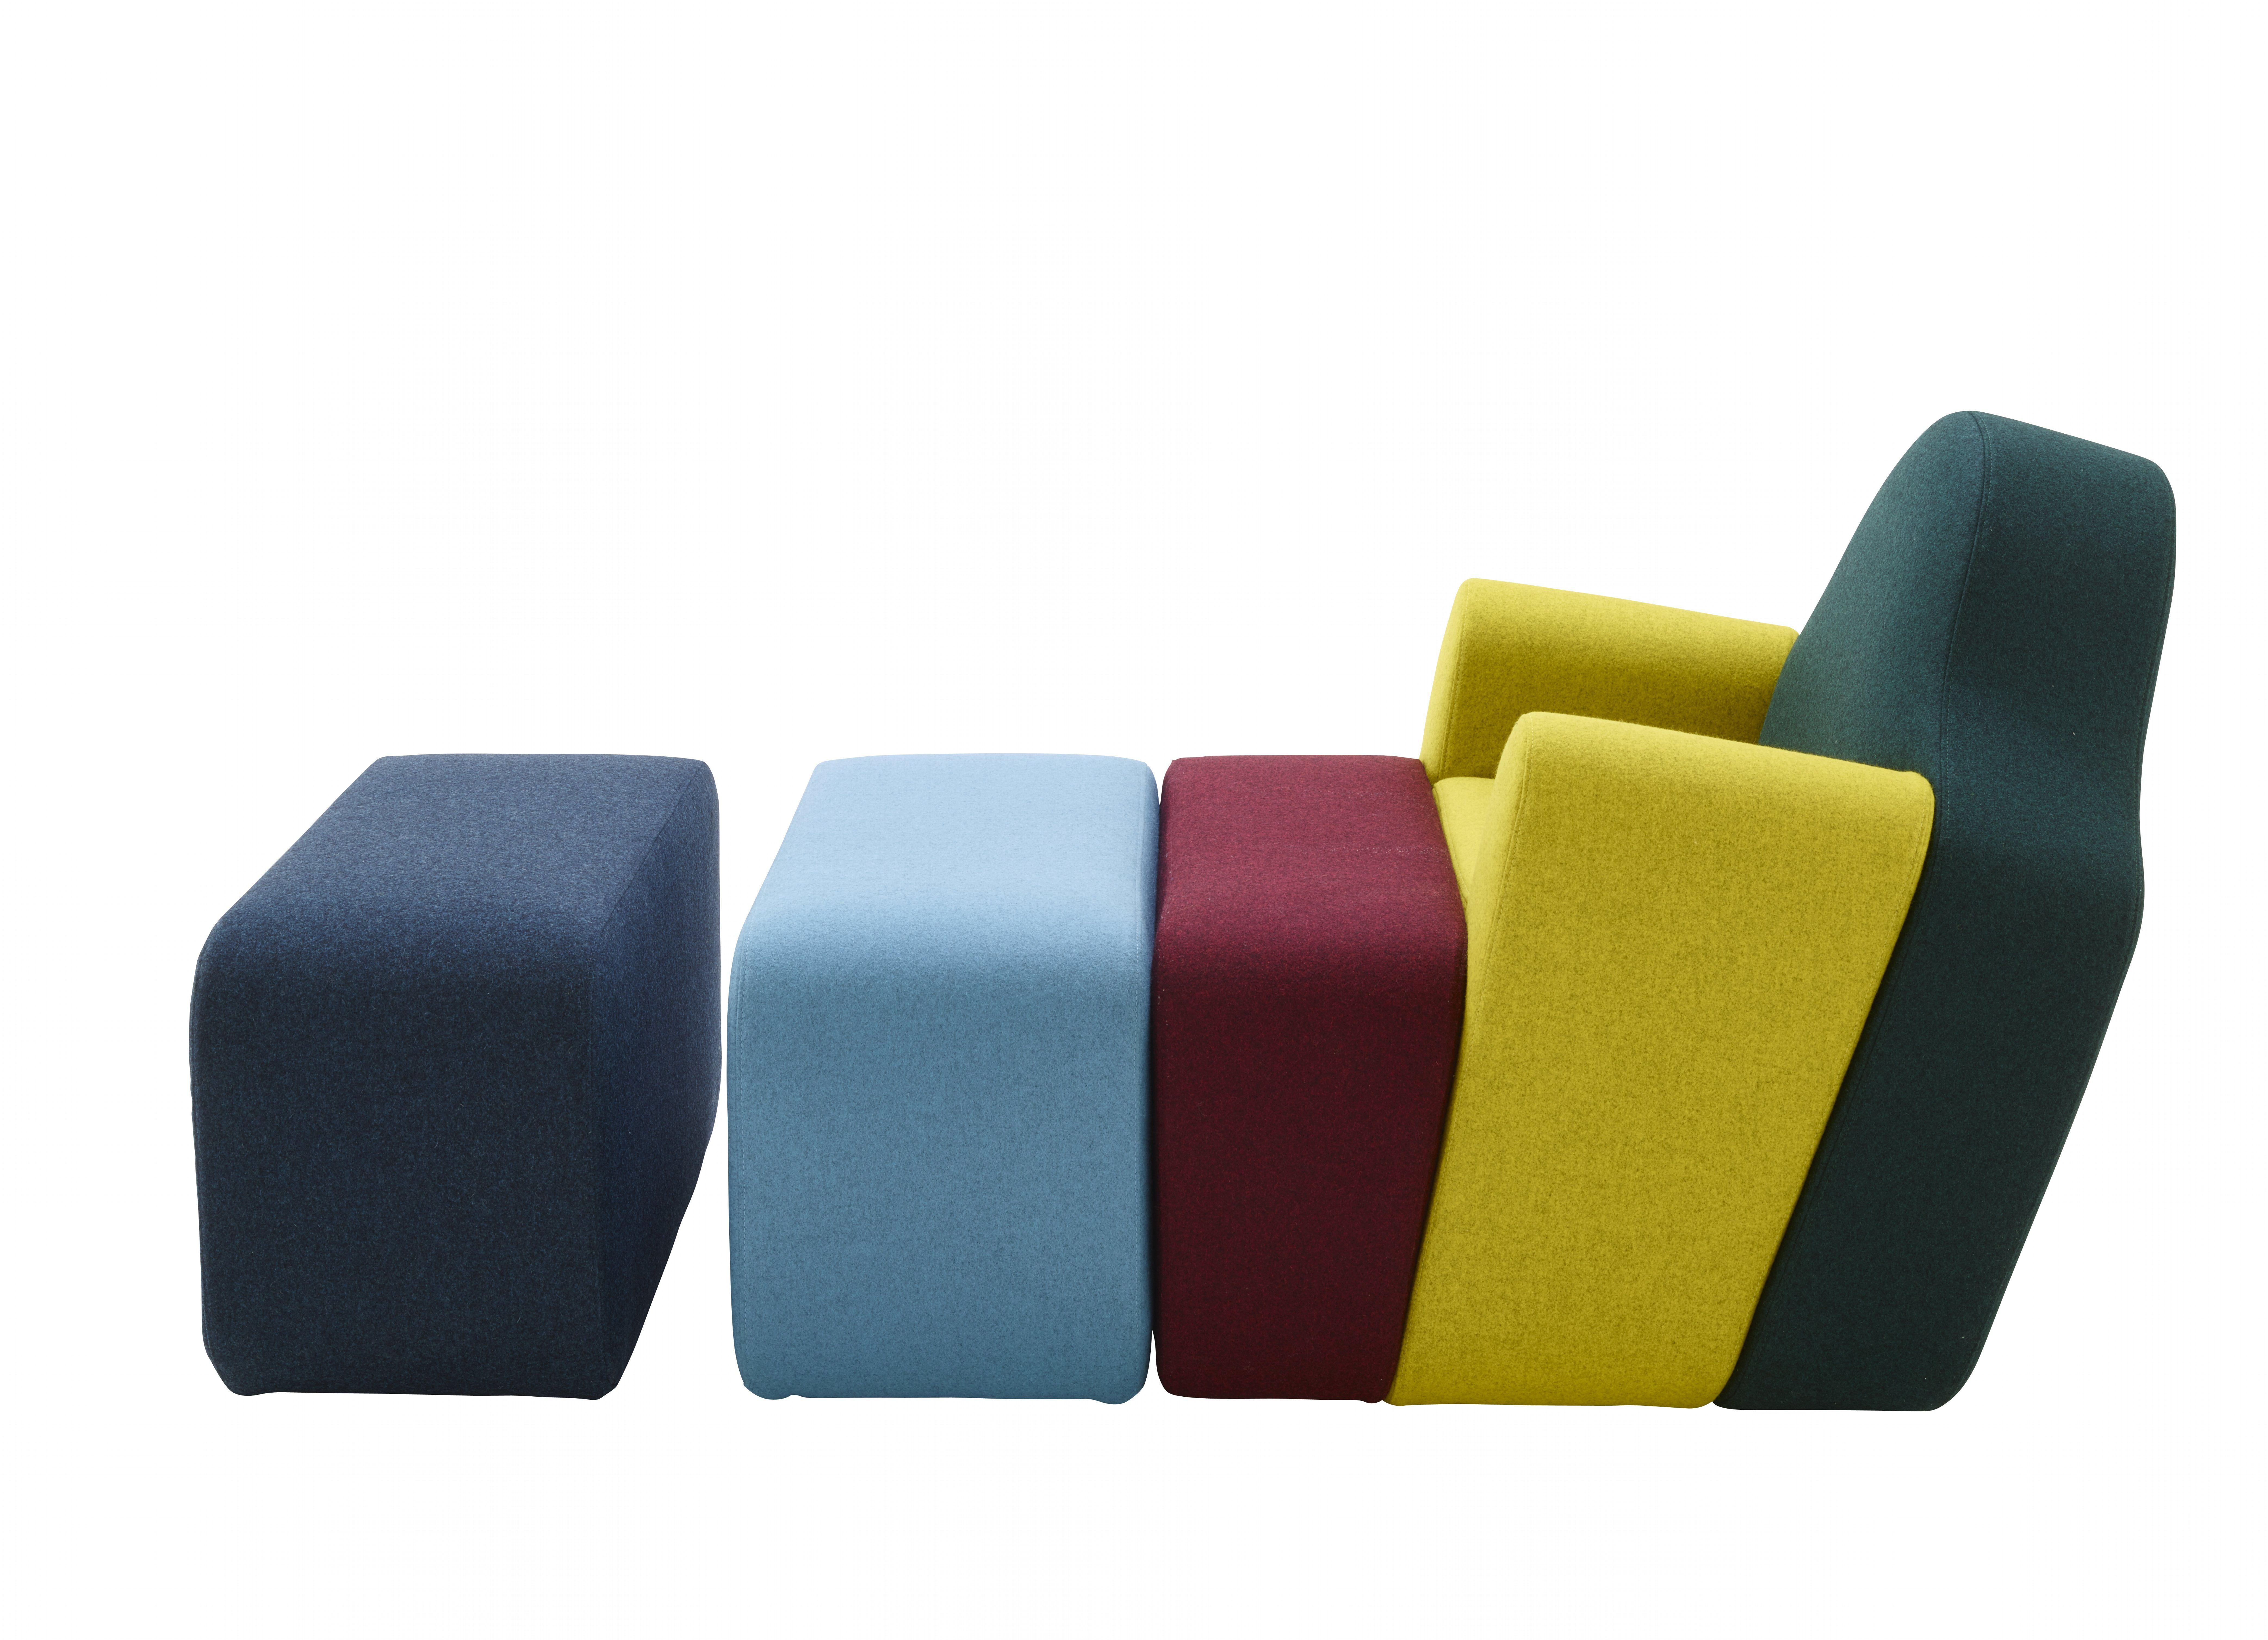 Slice armchair, by Pierre Charpin - Newsletter of September 2016